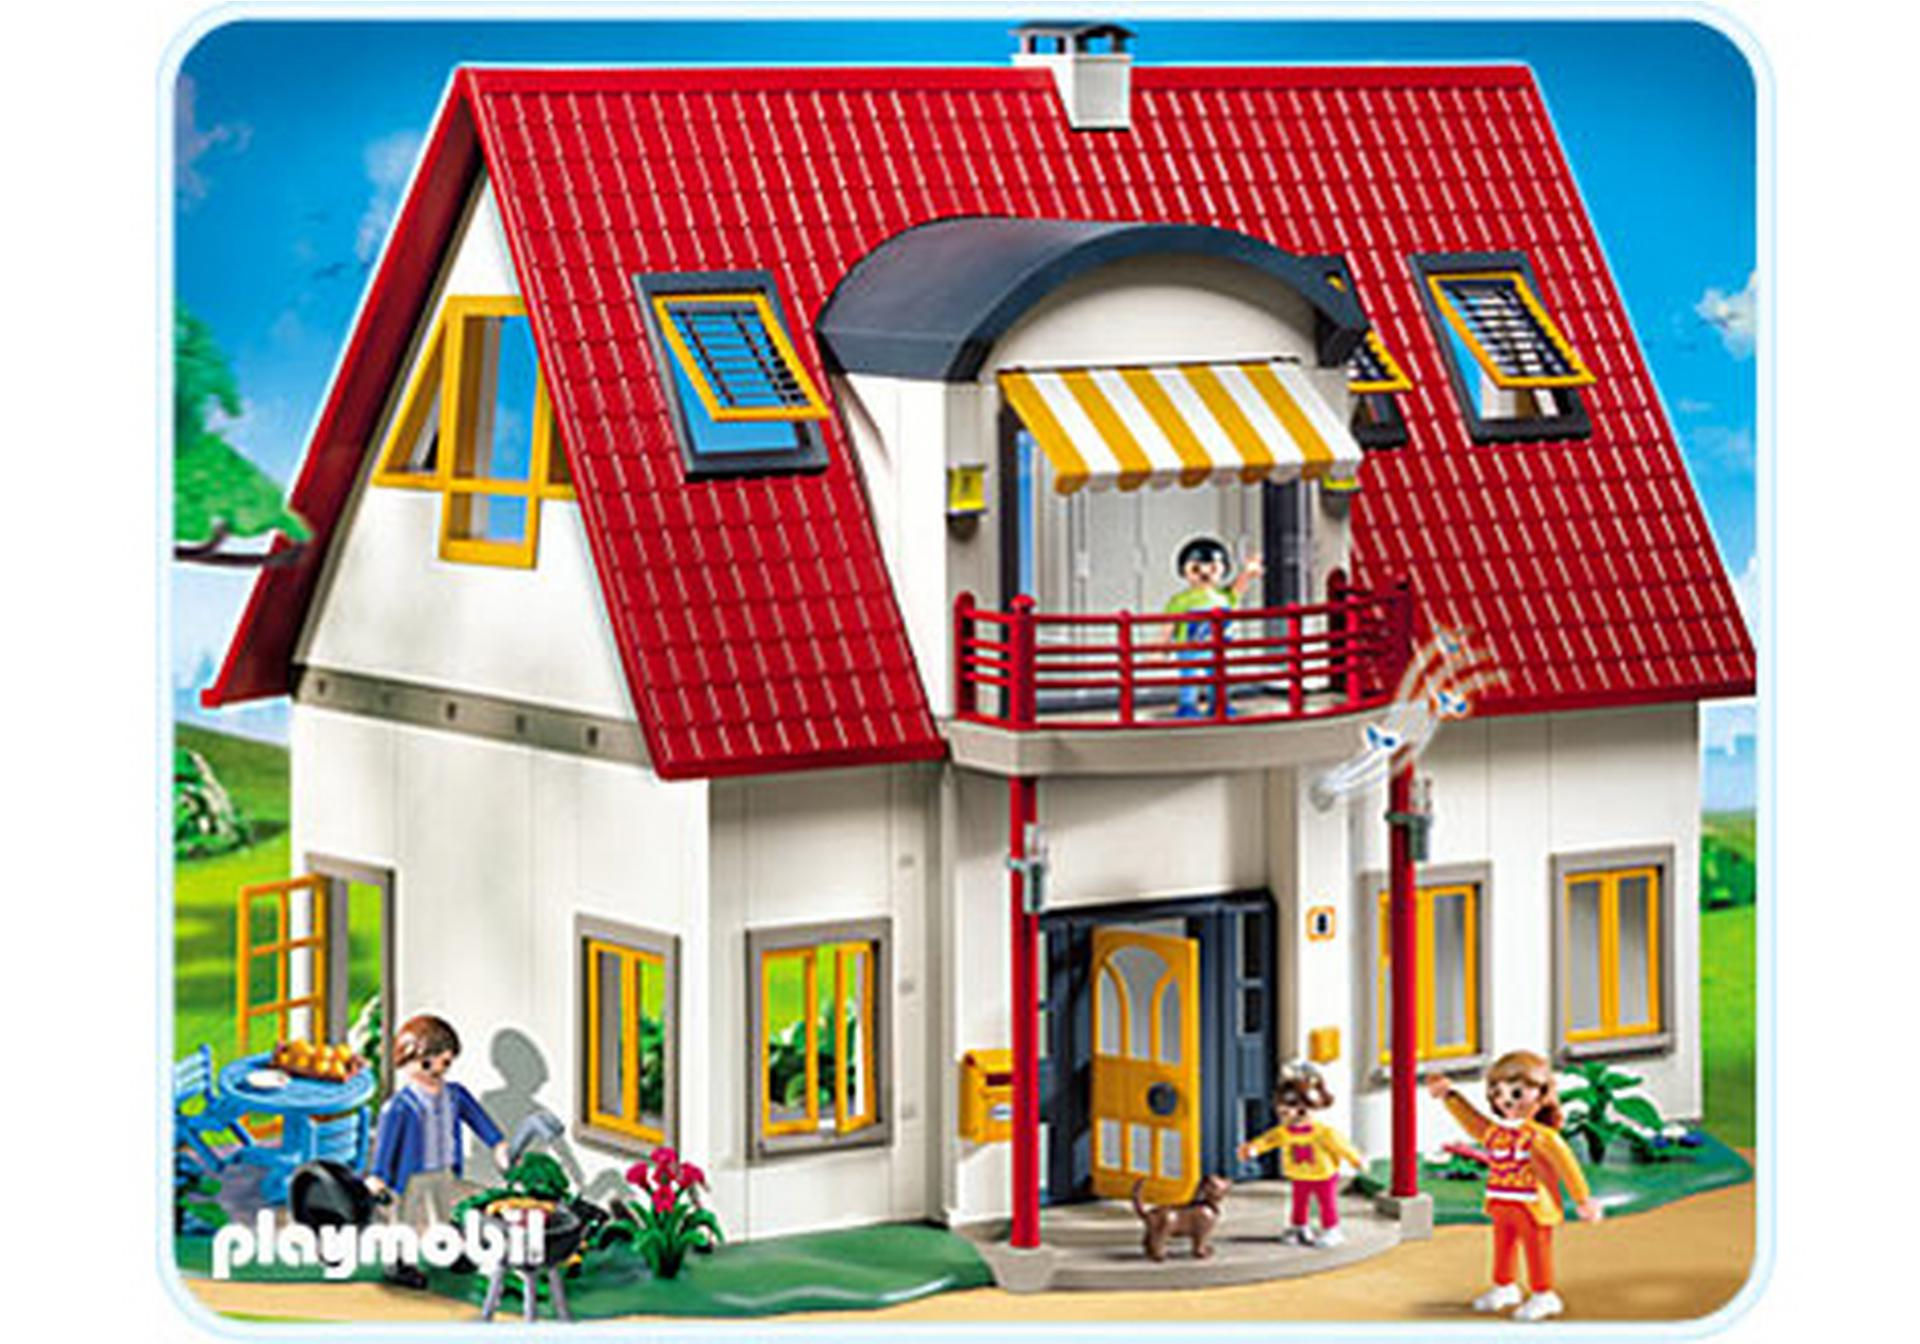 Villa moderne 4279 a playmobil france for 4279 playmobil